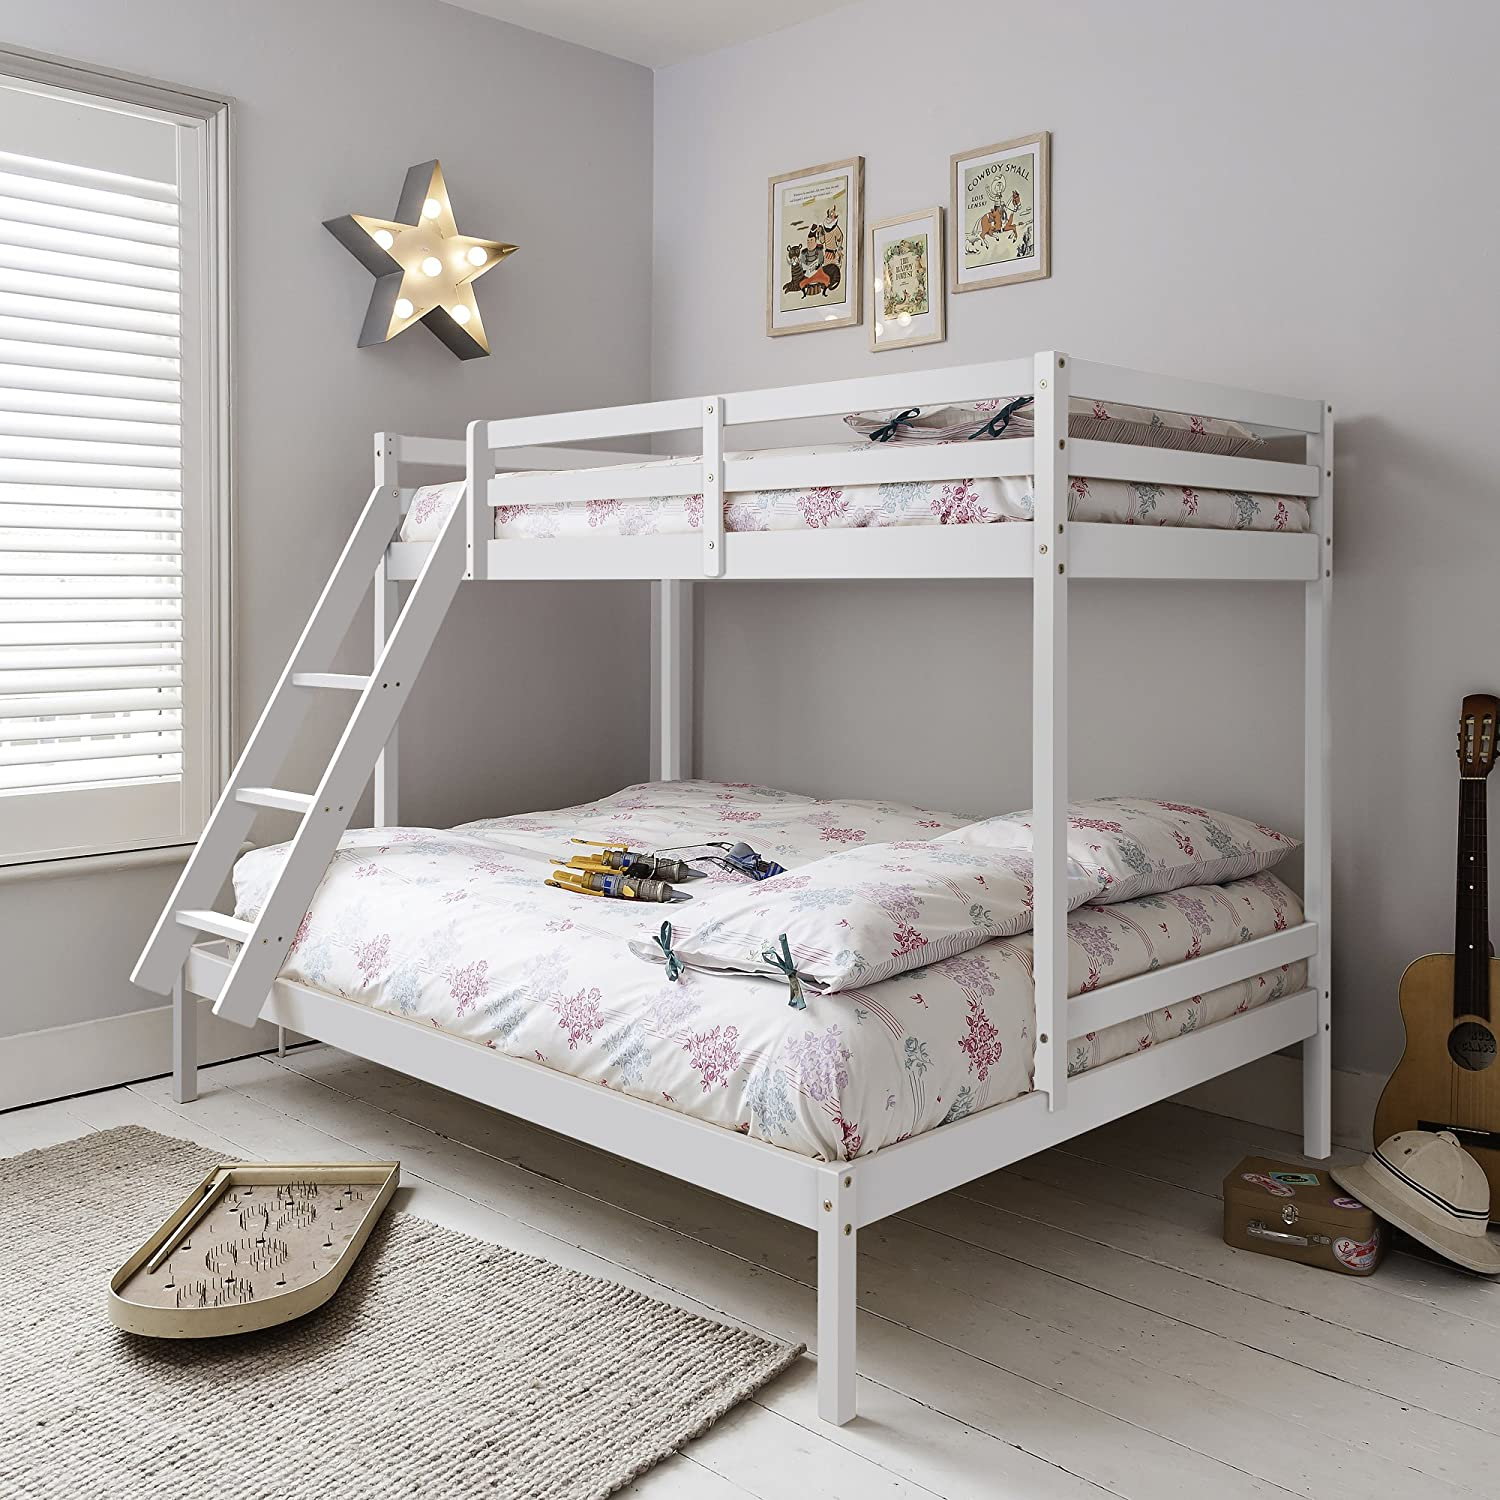 Noa And Nani Kent Triple Bed Bunk Bed White Amazon Co Uk Kitchen Home